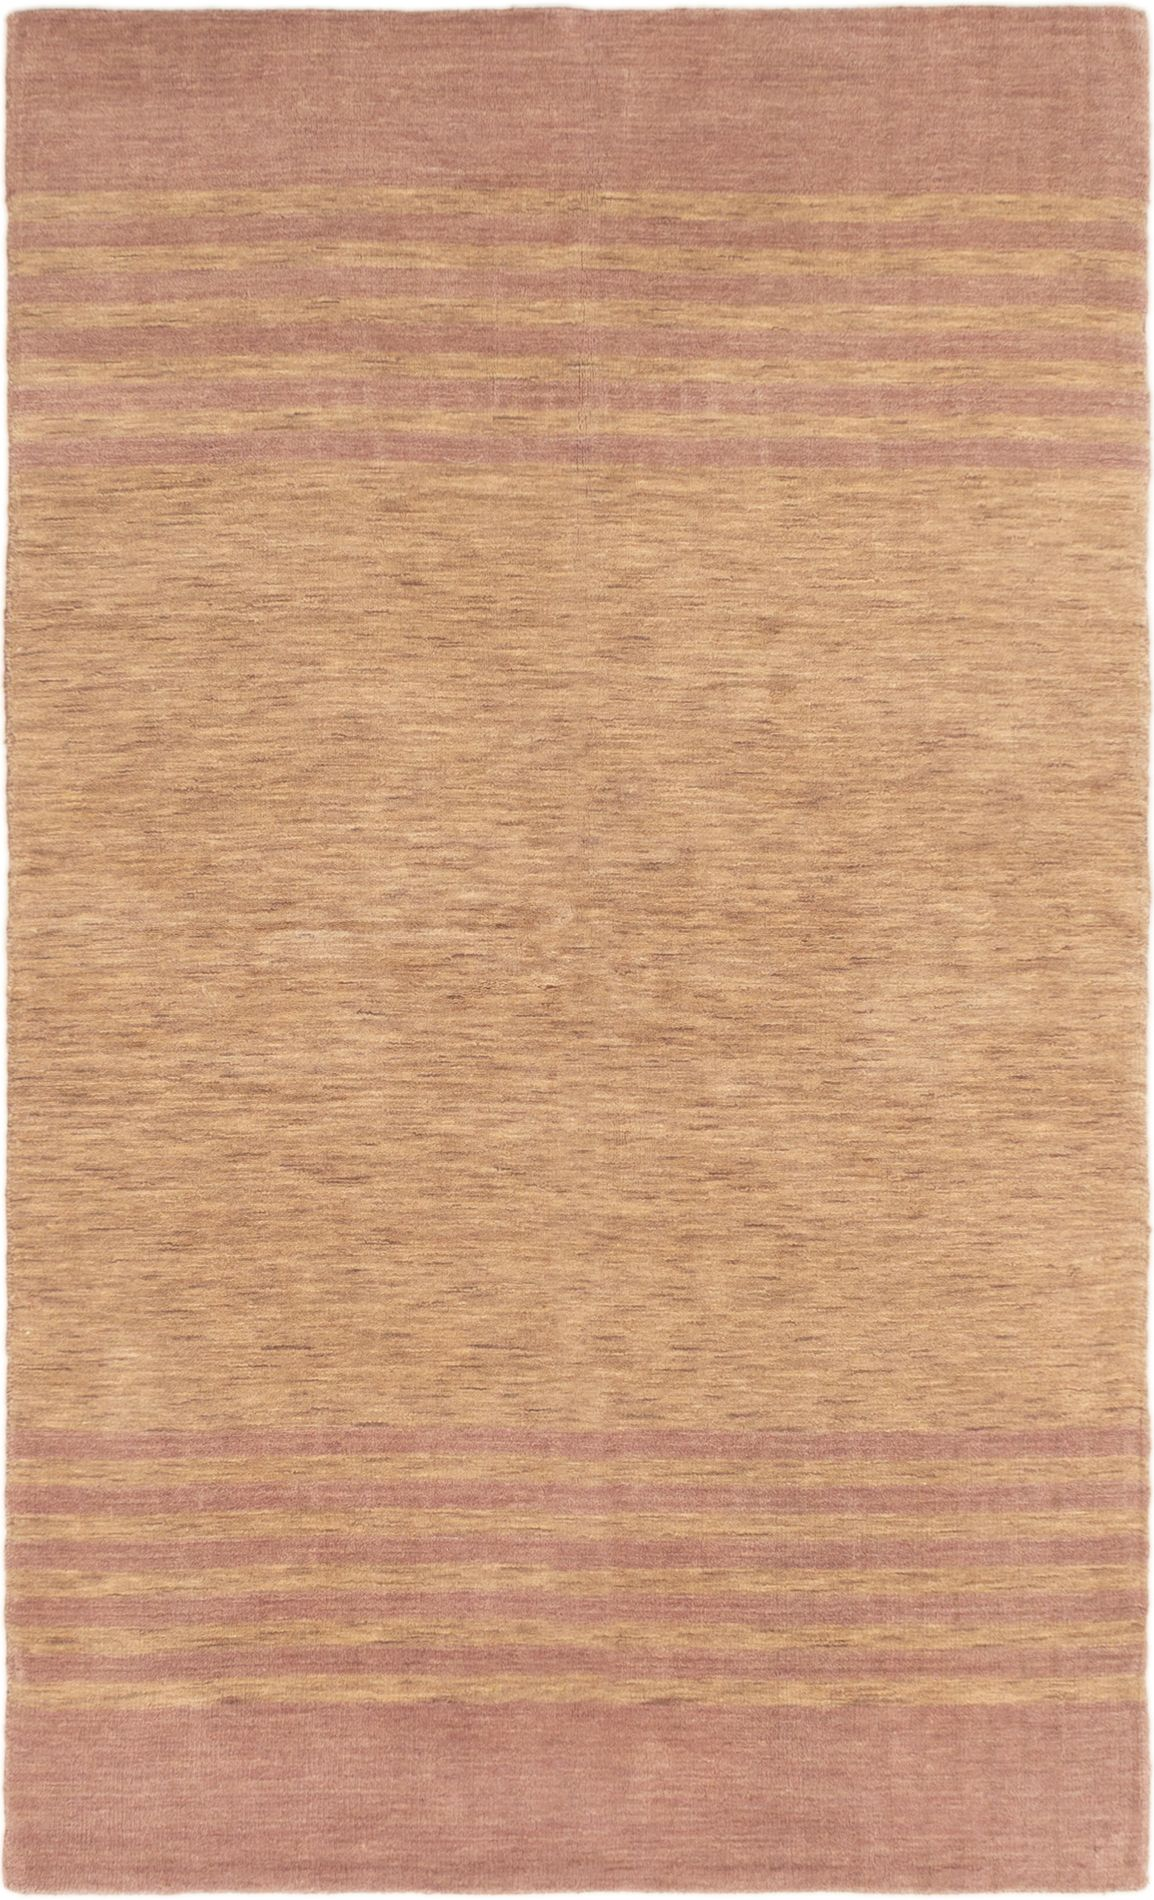 "Hand-knotted Luribaft Gabbeh Riz Tan Wool Rug 5'0"" x 8'0""  Size: 5'0"" x 8'0"""